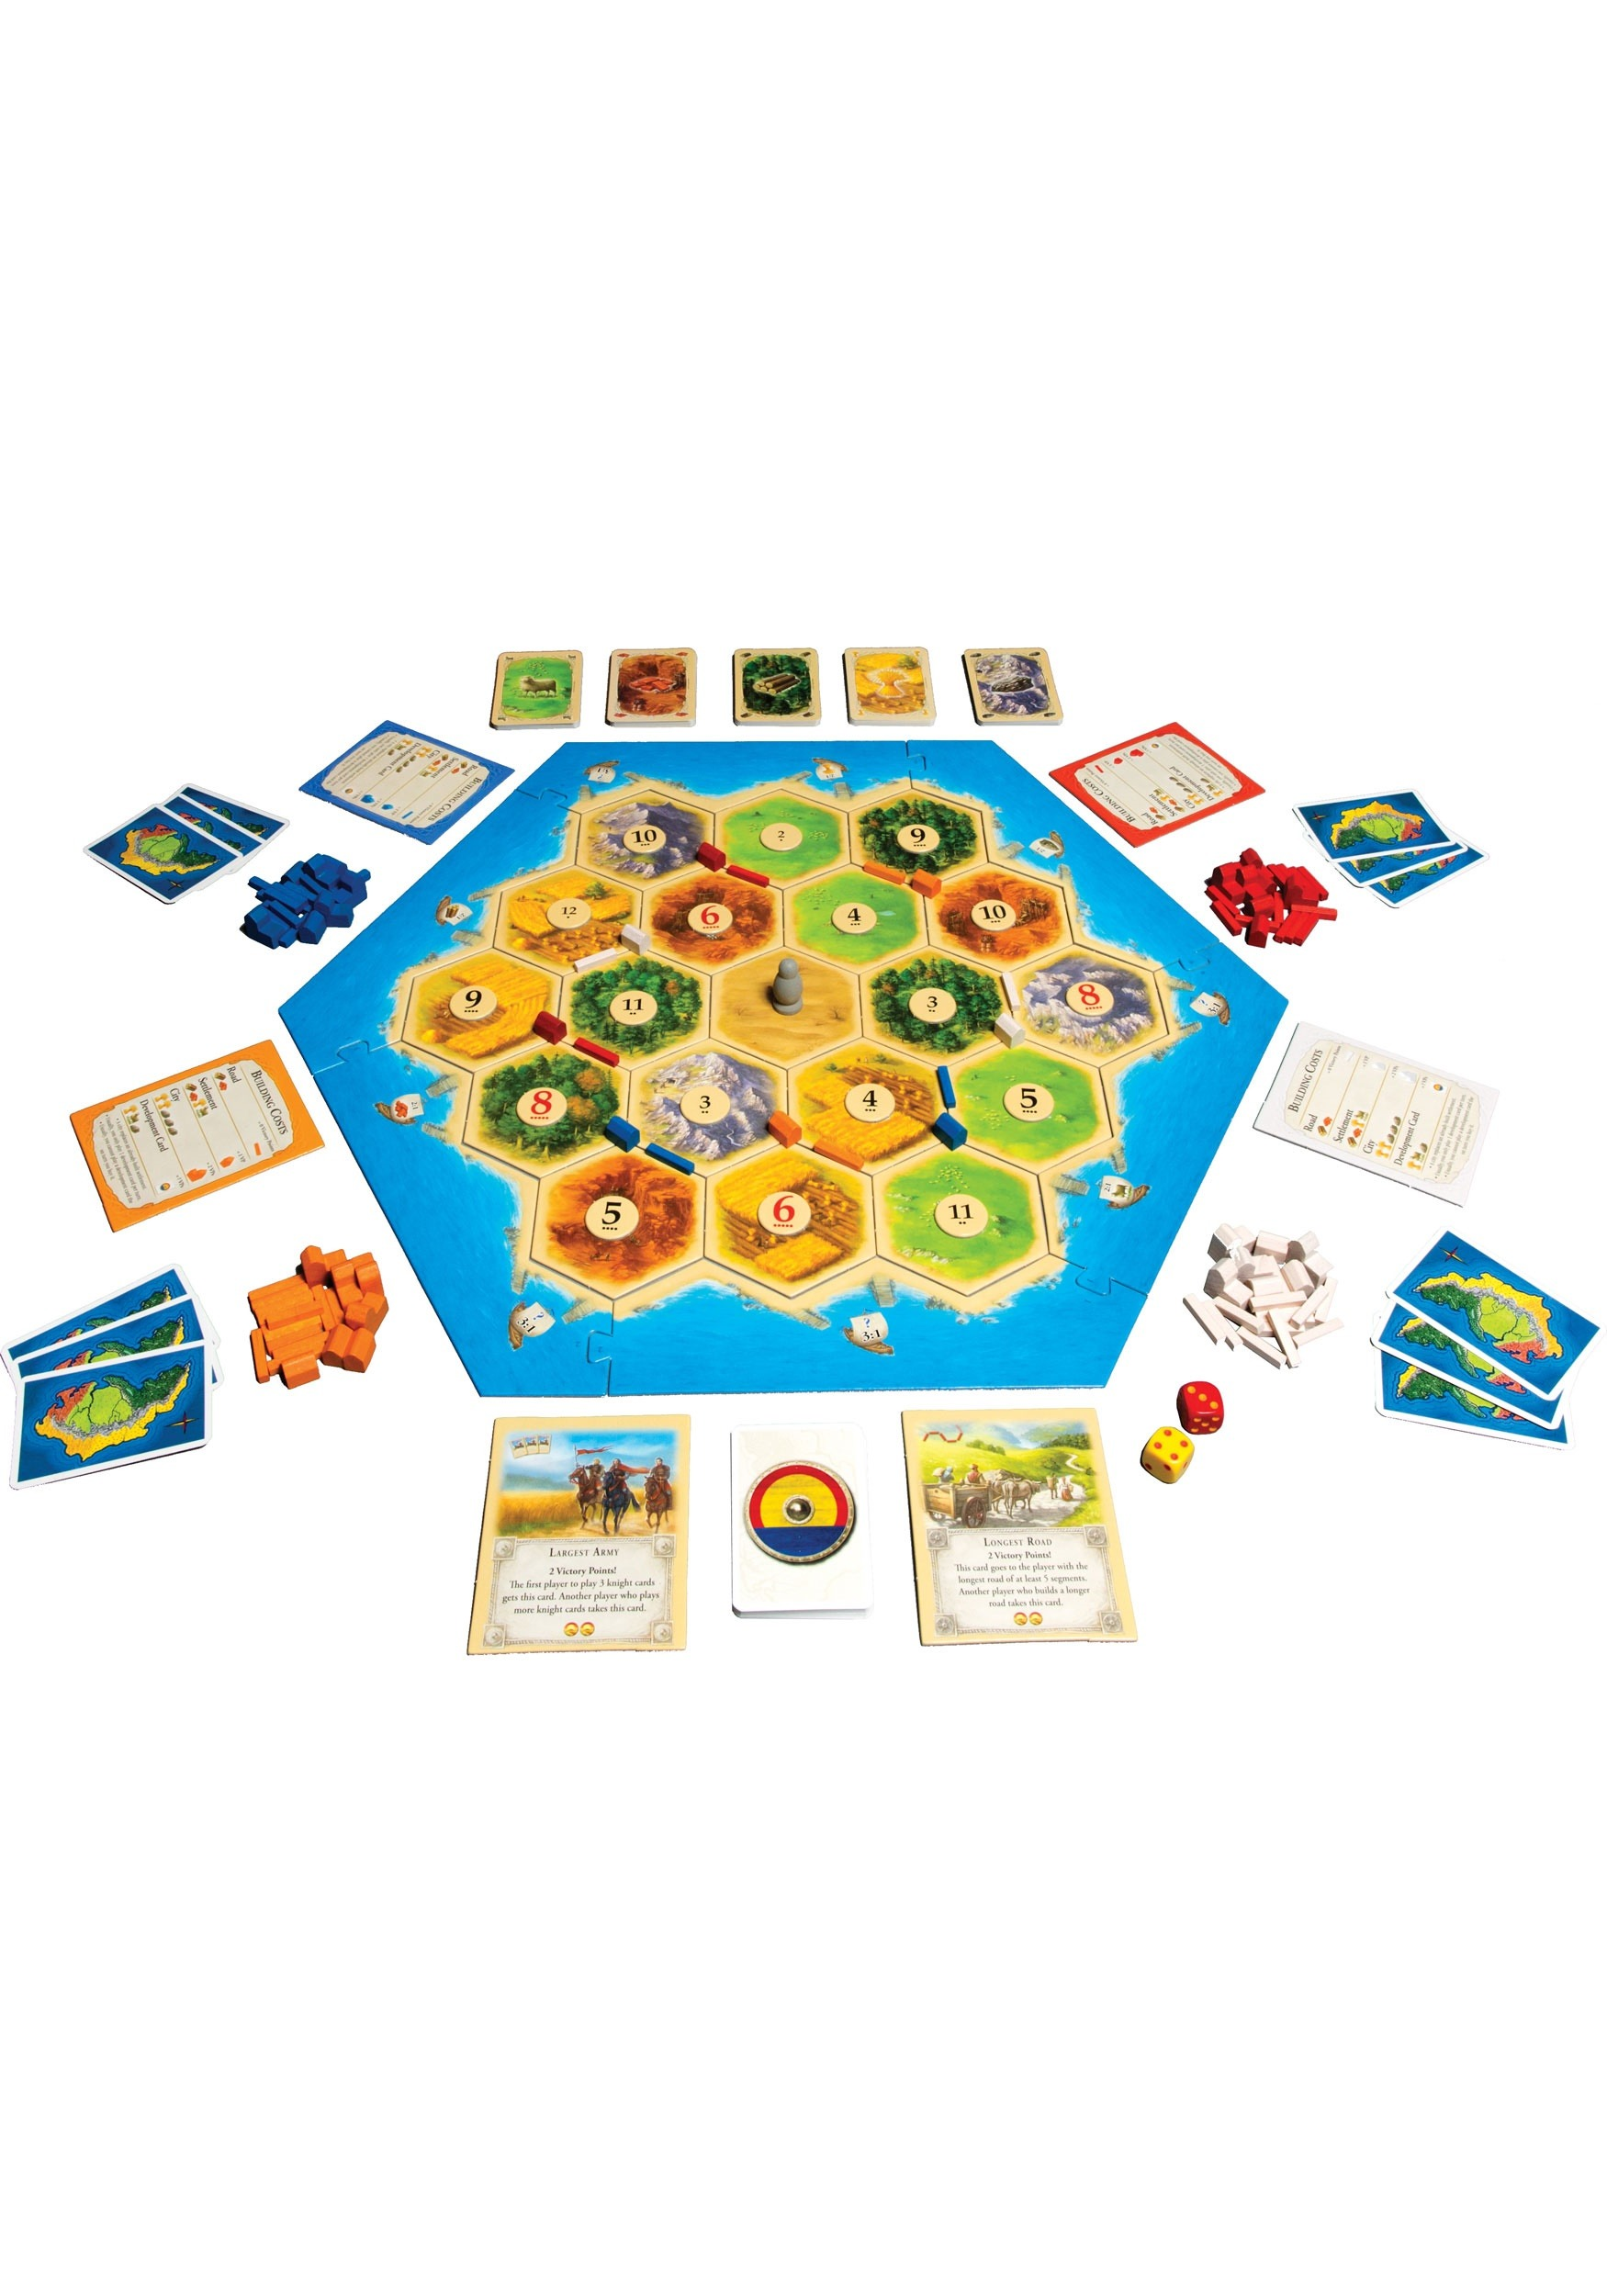 Catan- 5th Edition Board Game